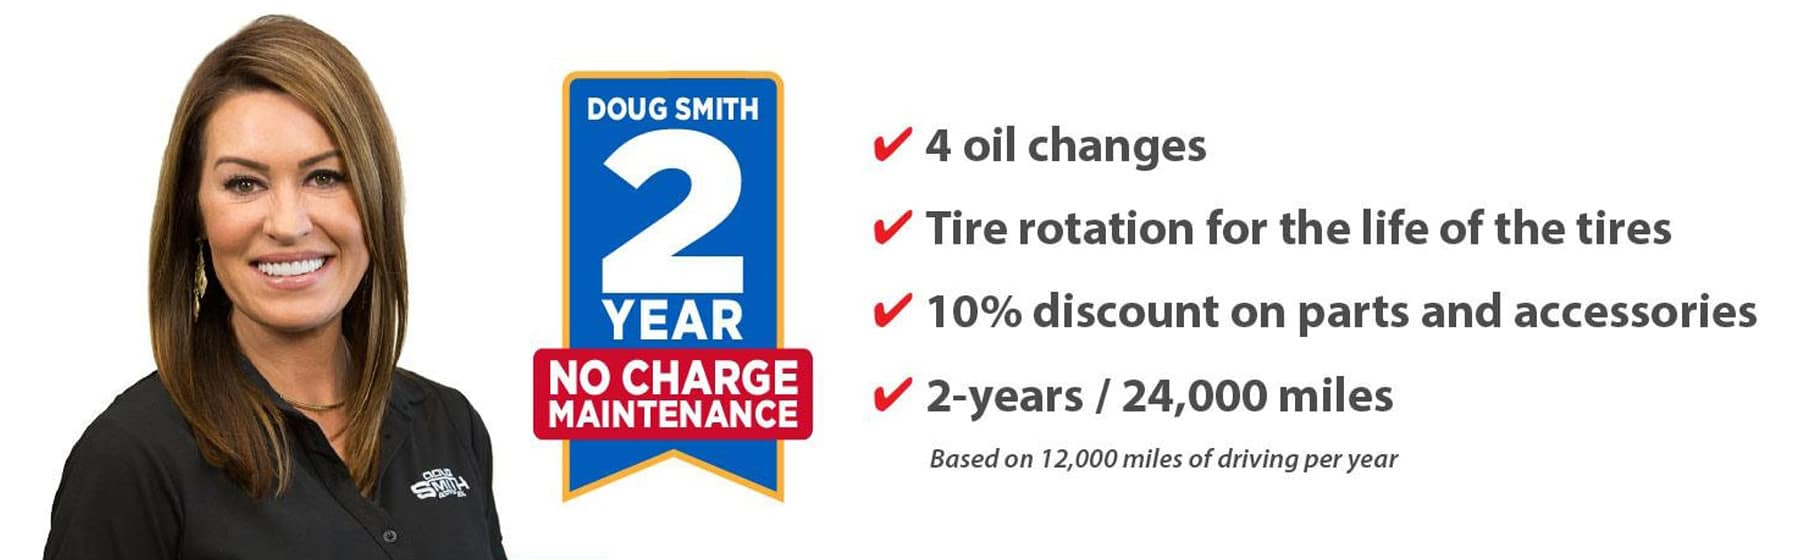 2 Year No Charge Maintenance at Doug Smith Chevy Dealer in Spanish Fork Utah